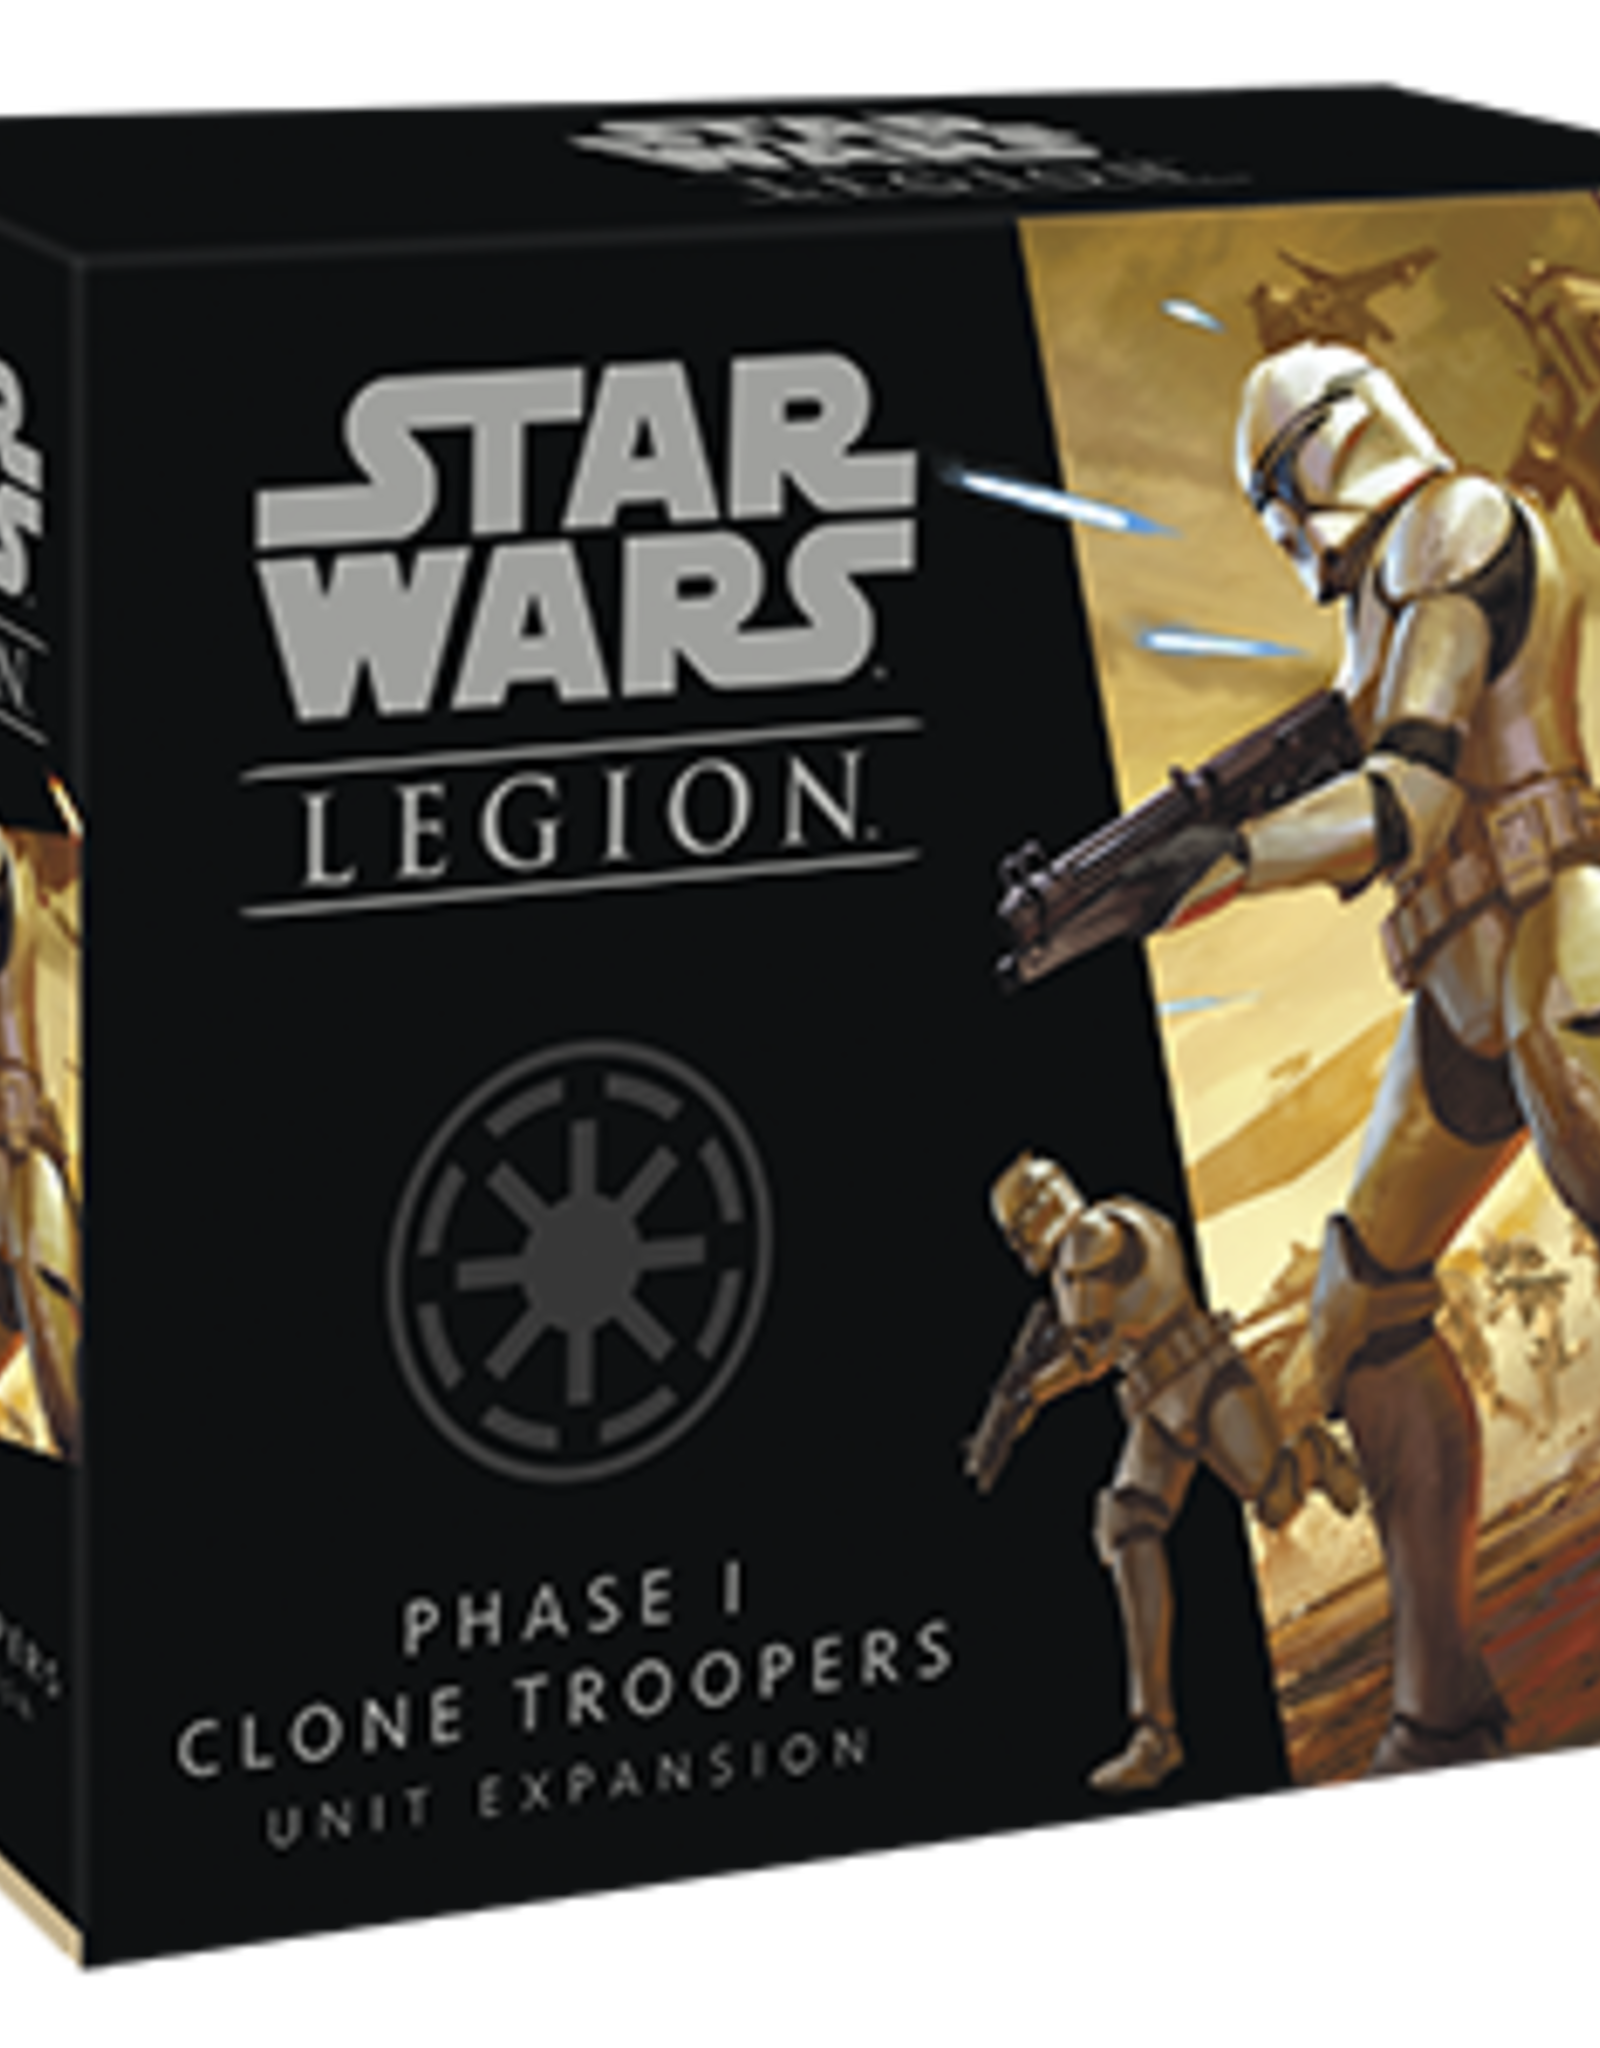 FFG Star Wars Legion: Phase I Clone Troopers Unit Expansion